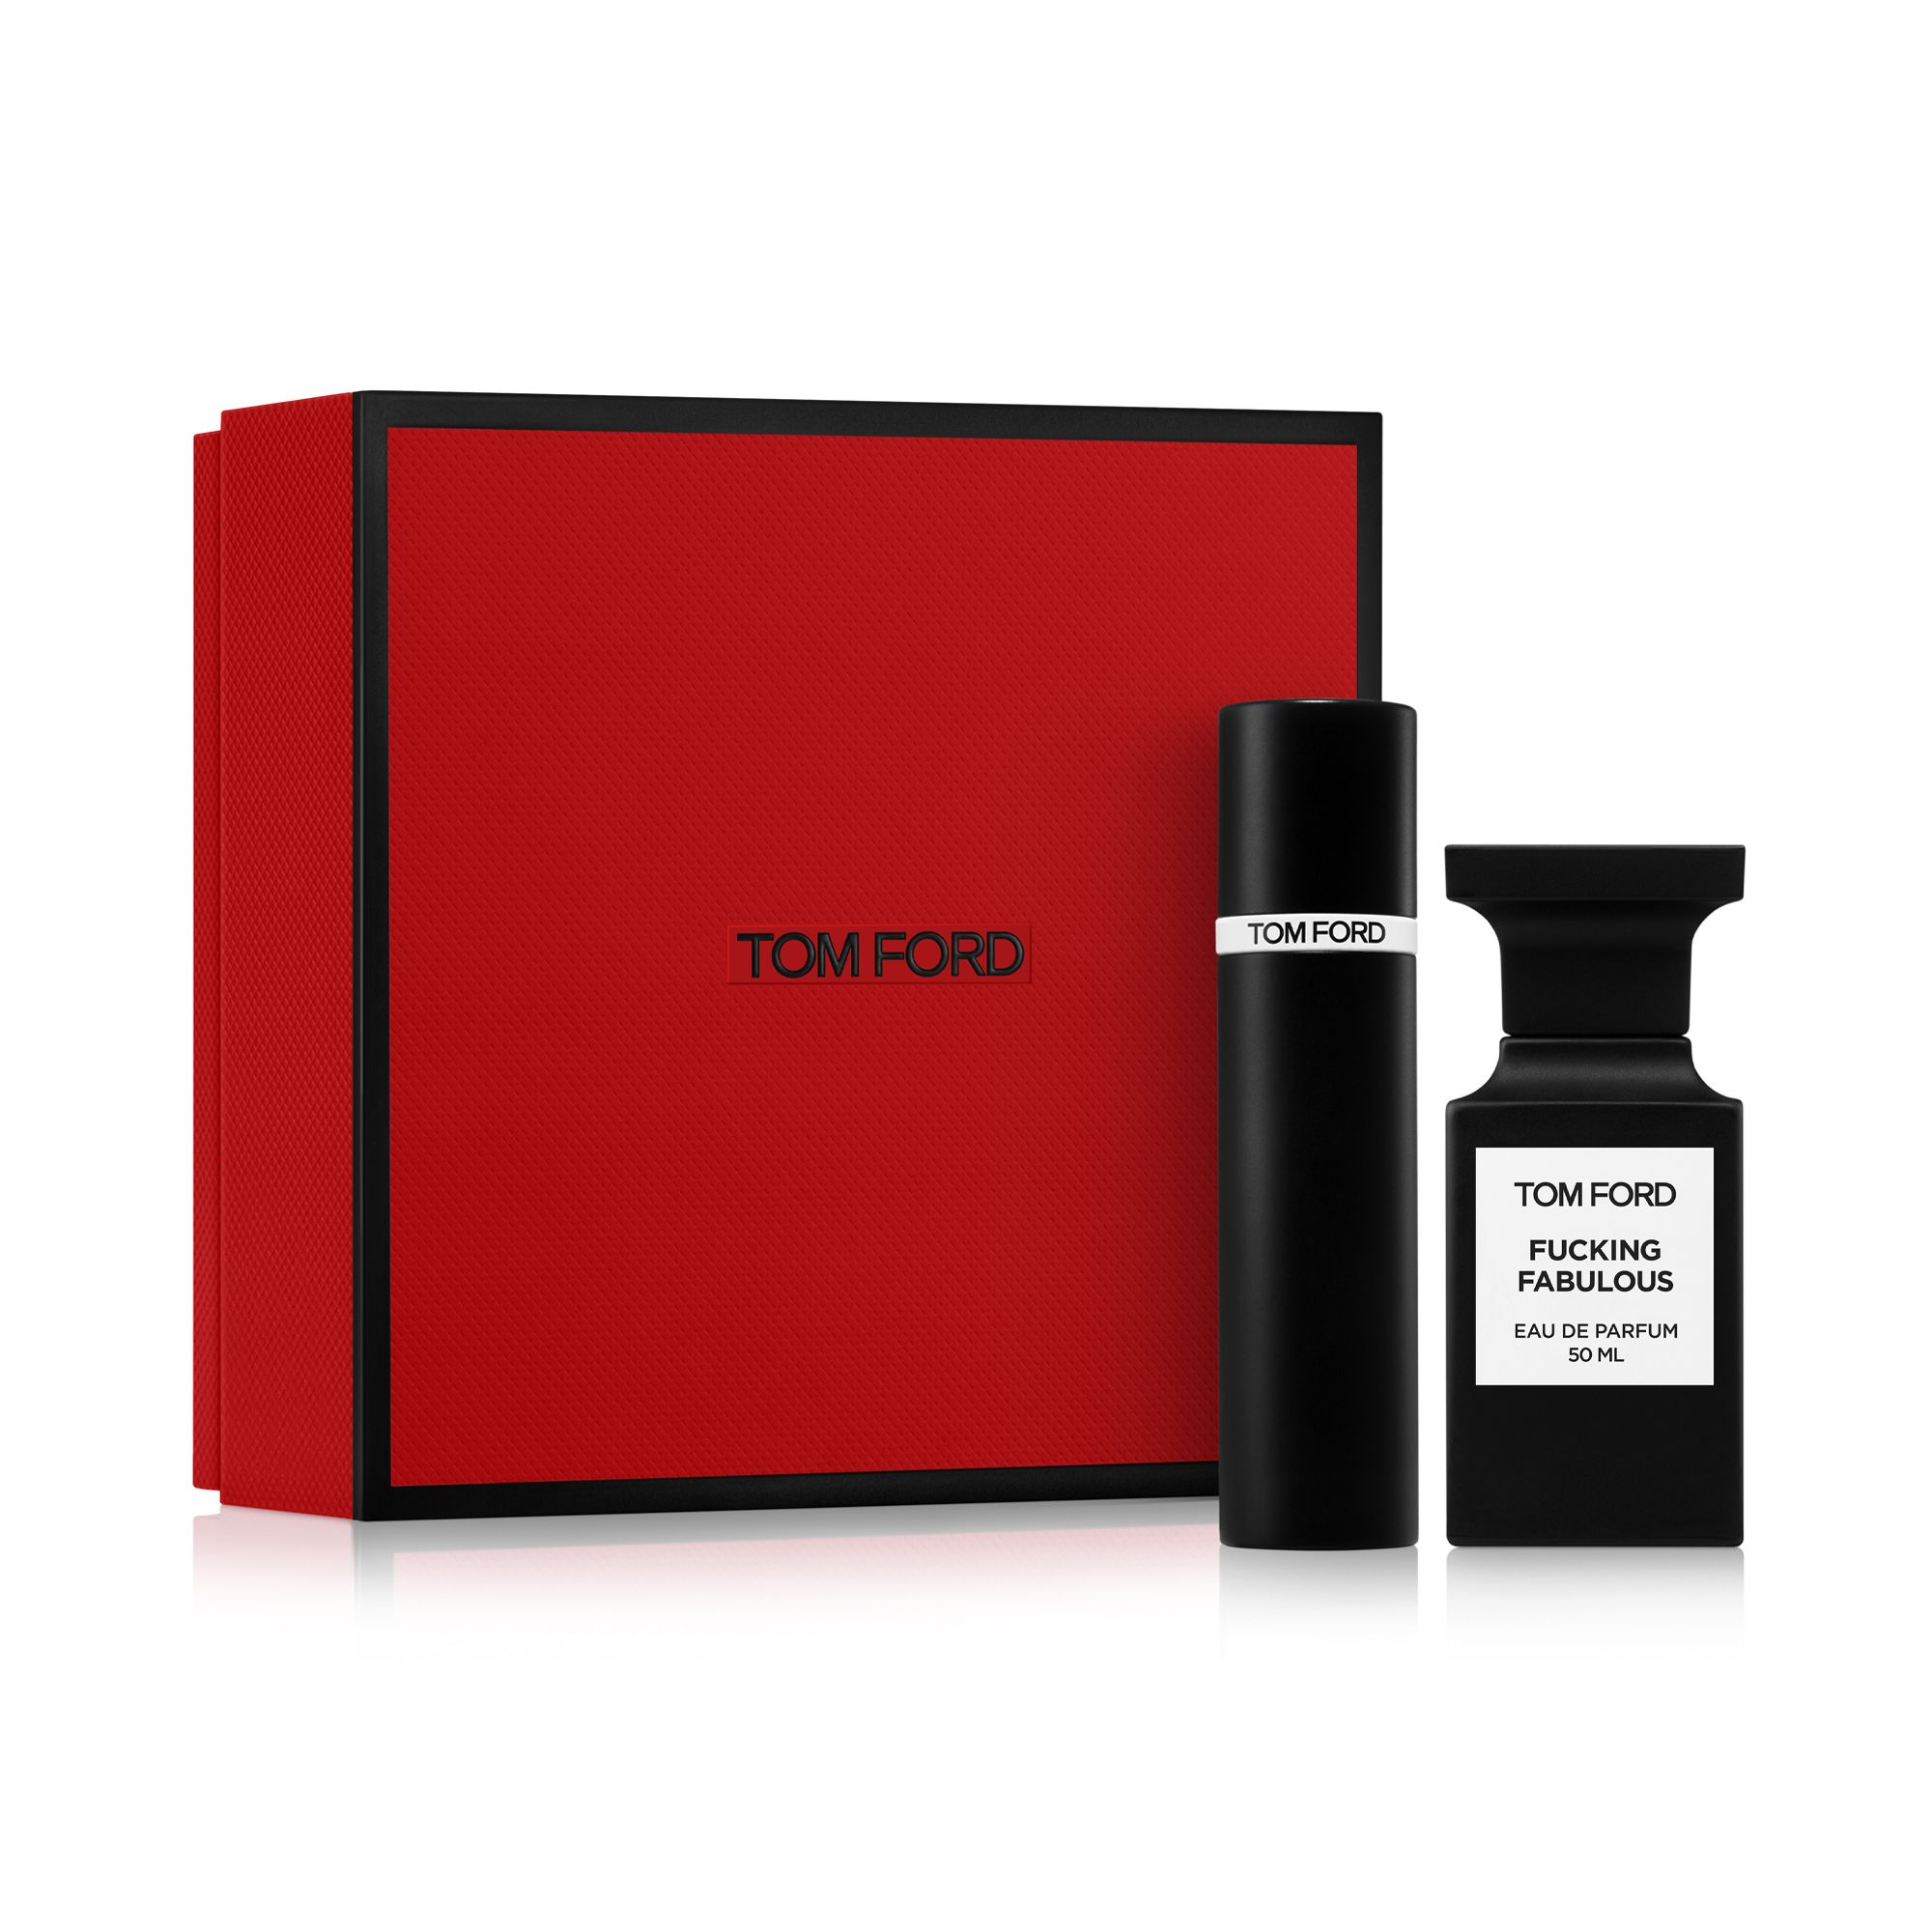 Tom Ford Fabulous Eau de Parfum Set